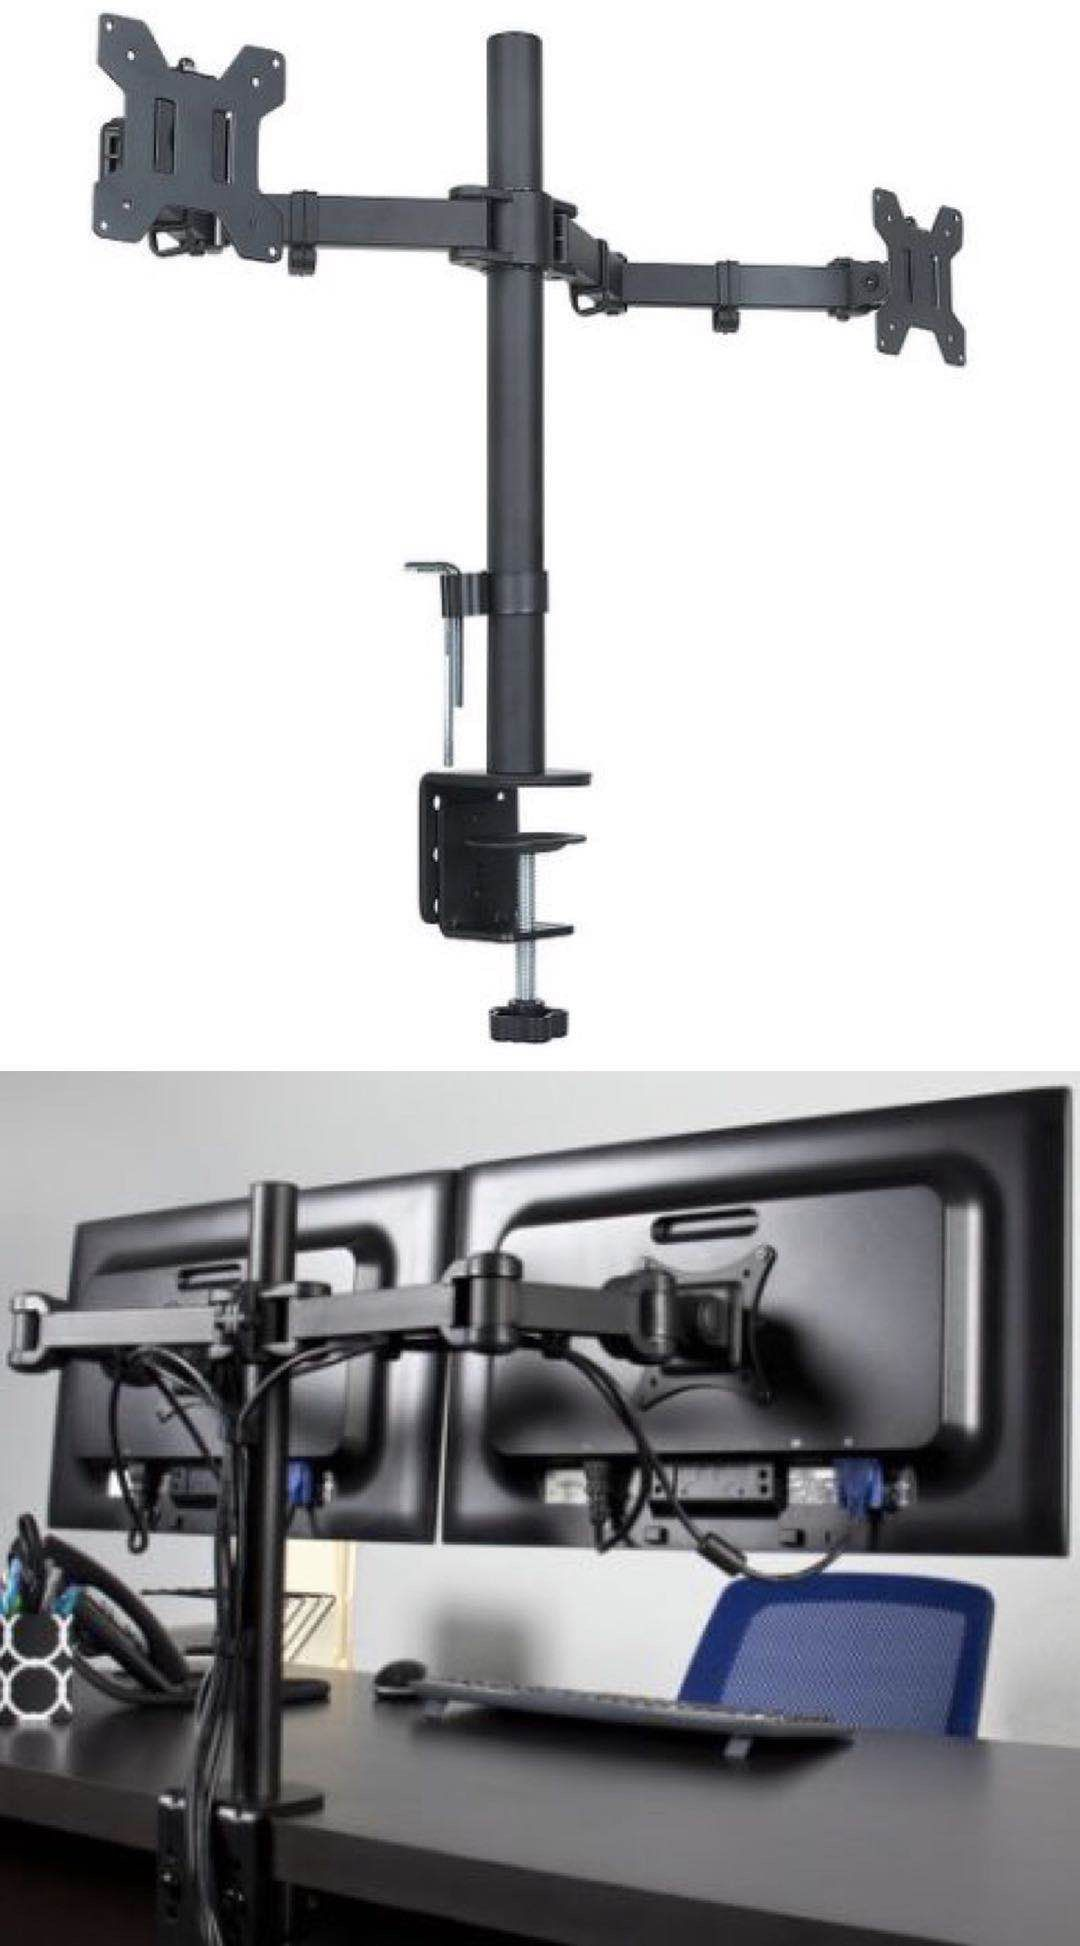 New in box Universal 10 to 24 inches dual computer screen monitor holder stand clamp mount